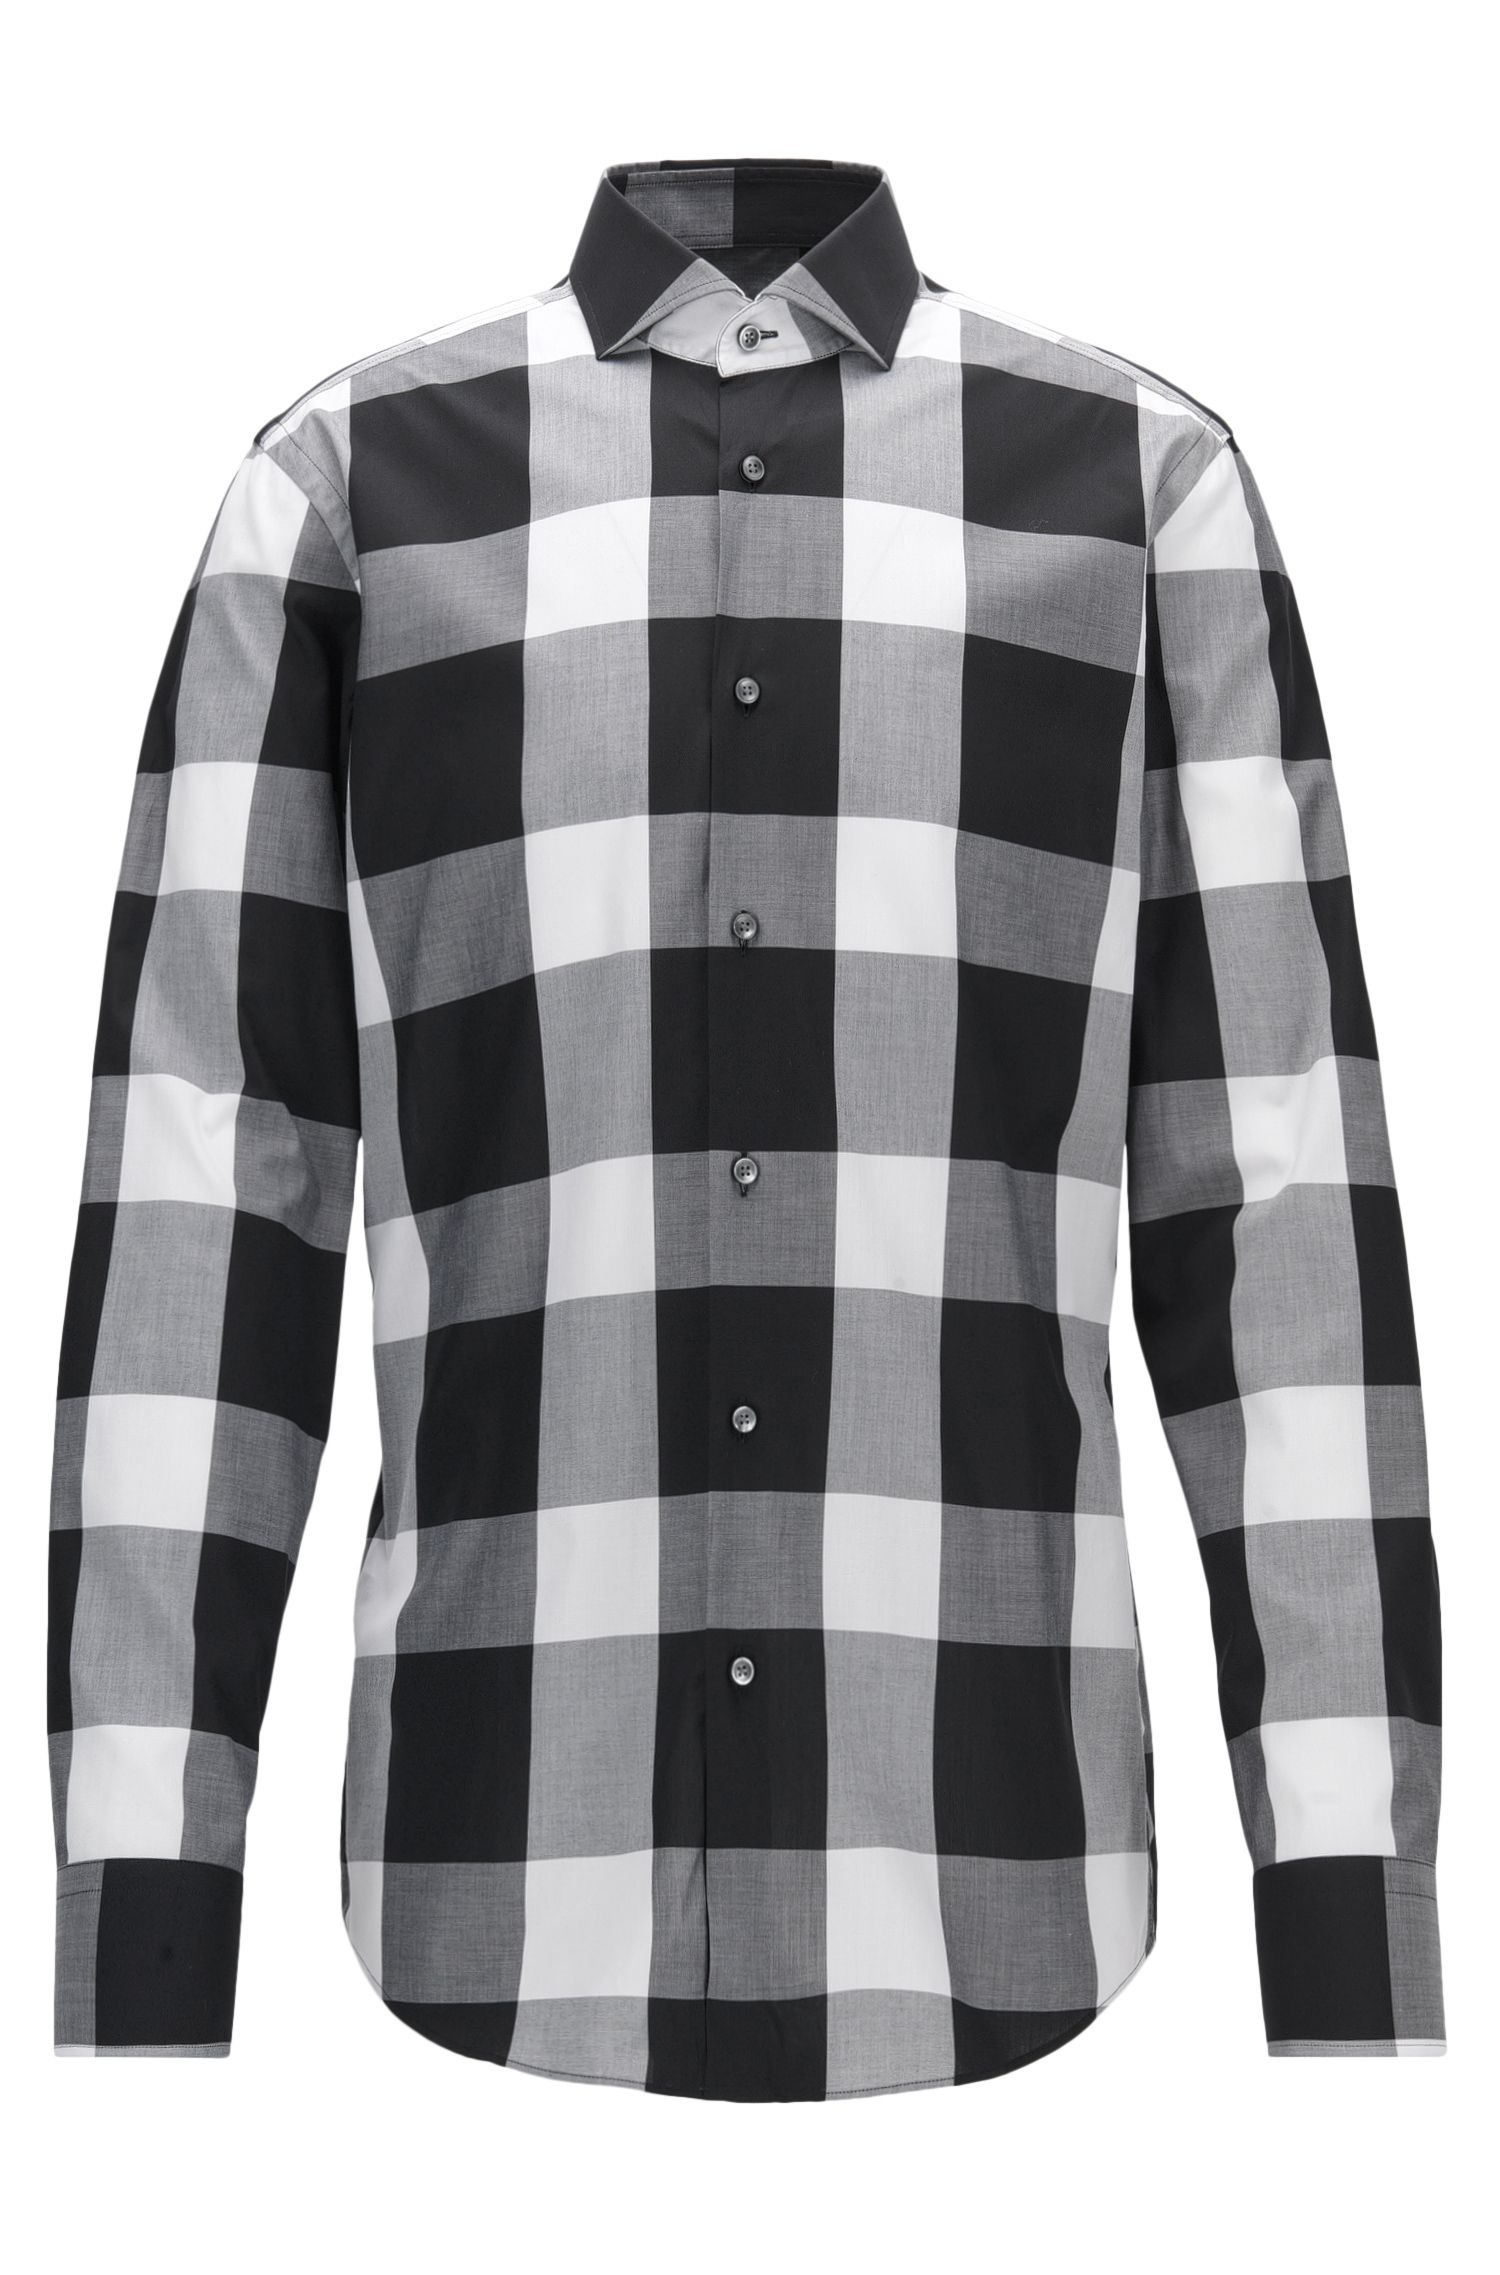 Buffalo Check Cotton Dress Shirt, Slim Fit | Jason